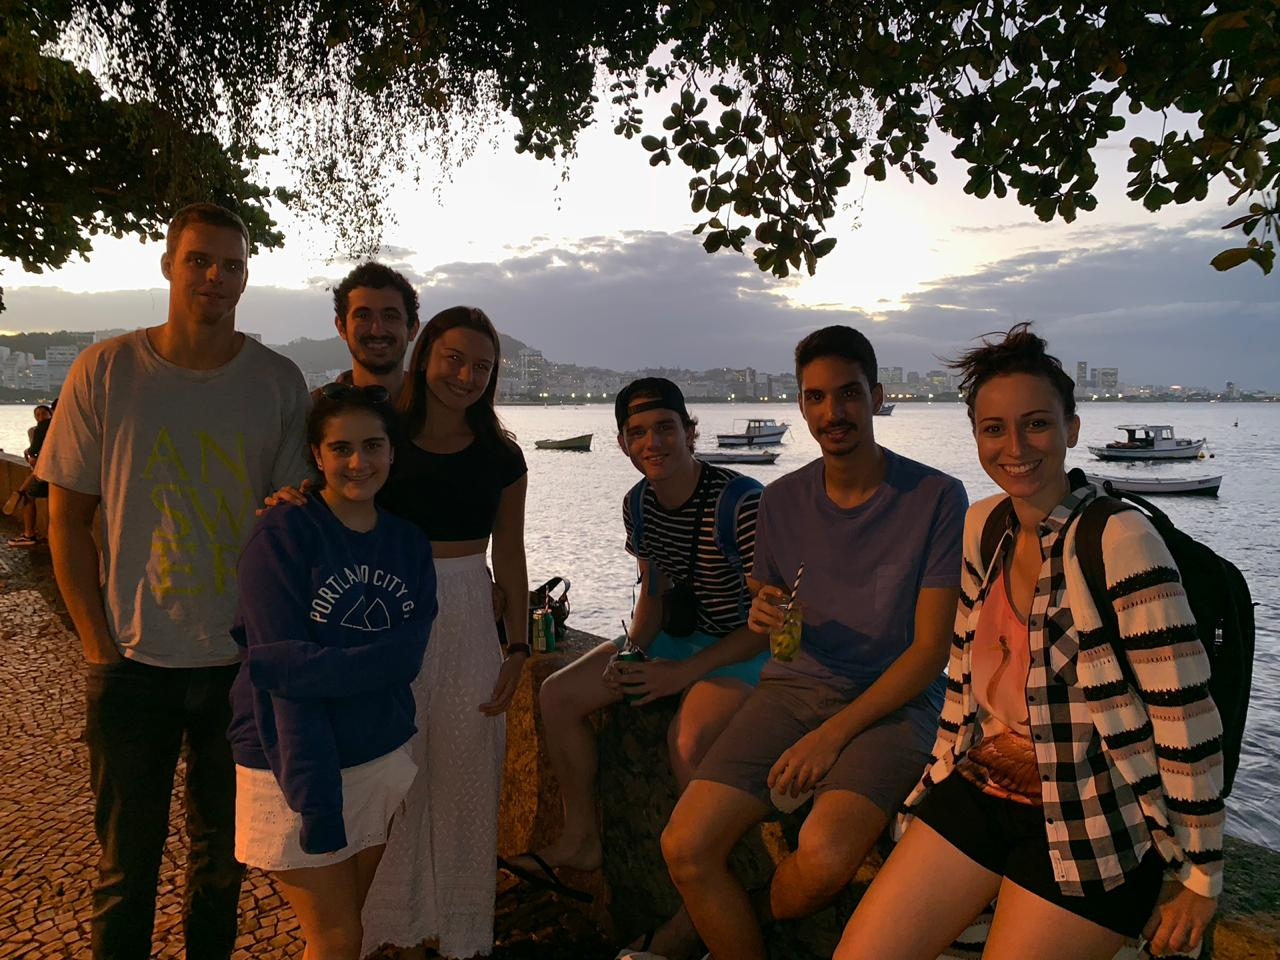 Beautiful young foreign students having some good time drinking and learning Portuguese in Urca, Rio de Janeiro